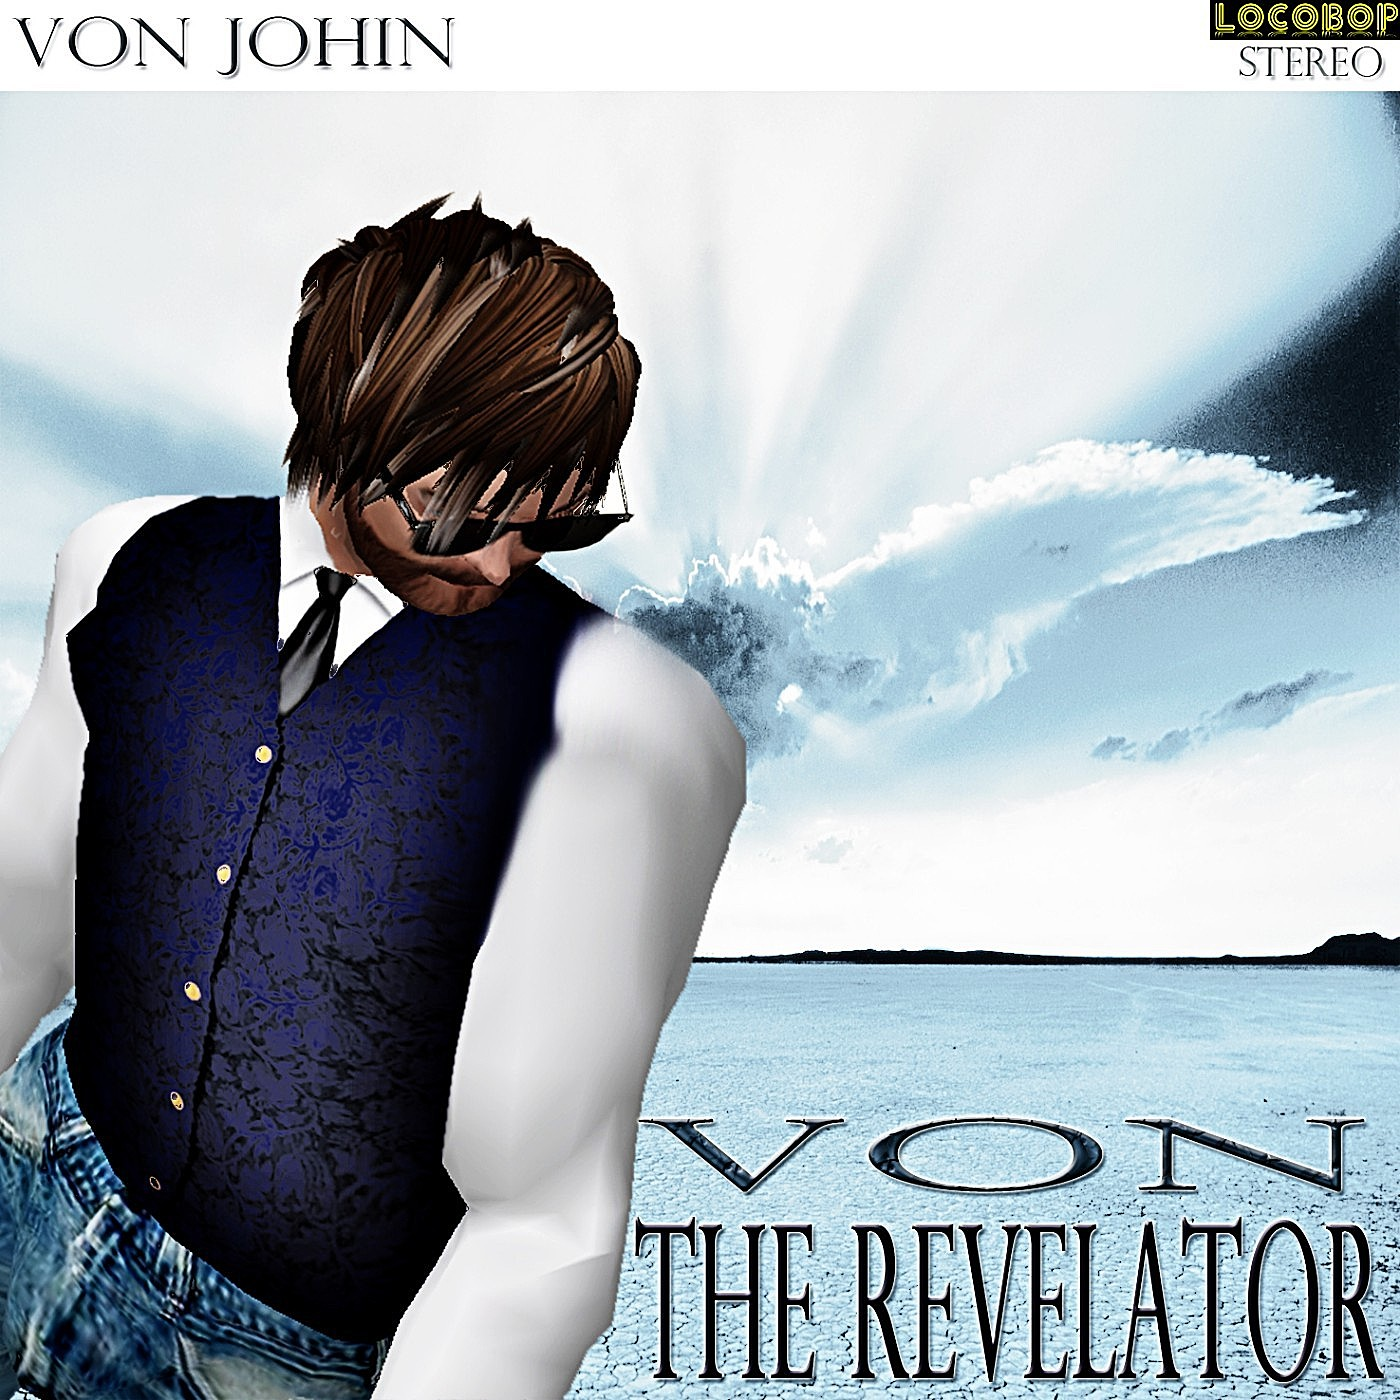 John the Revelator (Stereo)